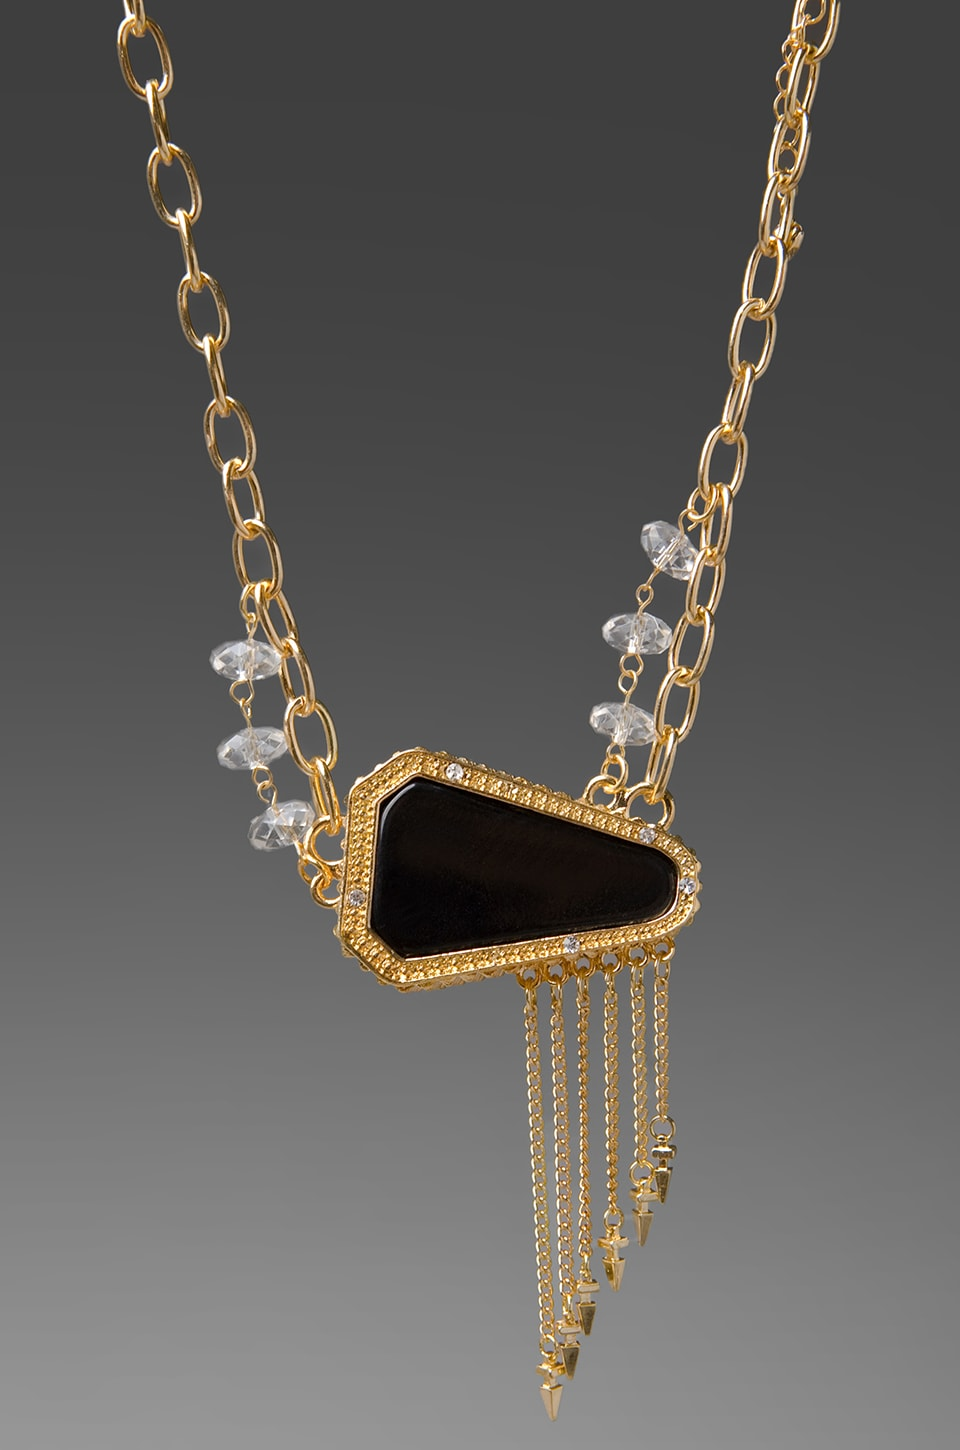 Belle Noel Resin Stone and Pave Necklace in Gold